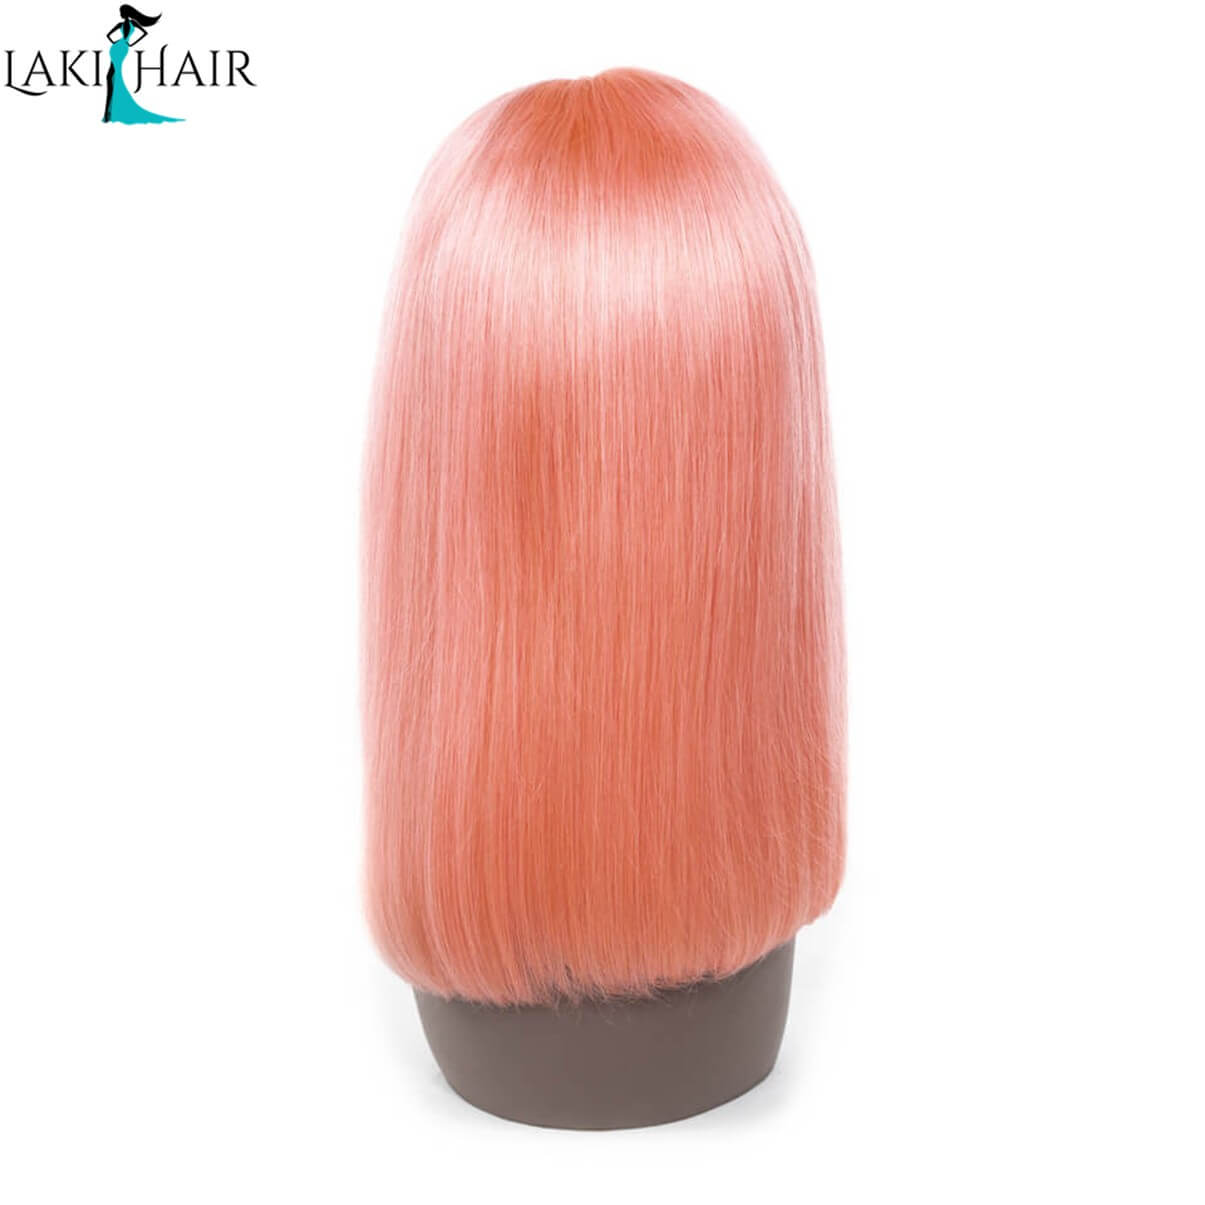 Lakihair Short Lace Front Human Hair Wigs Pink Blonde Short Bob Straight Lace Wigs Brazilian Virgin Human Hair 180% Density Pre plucked Hairline